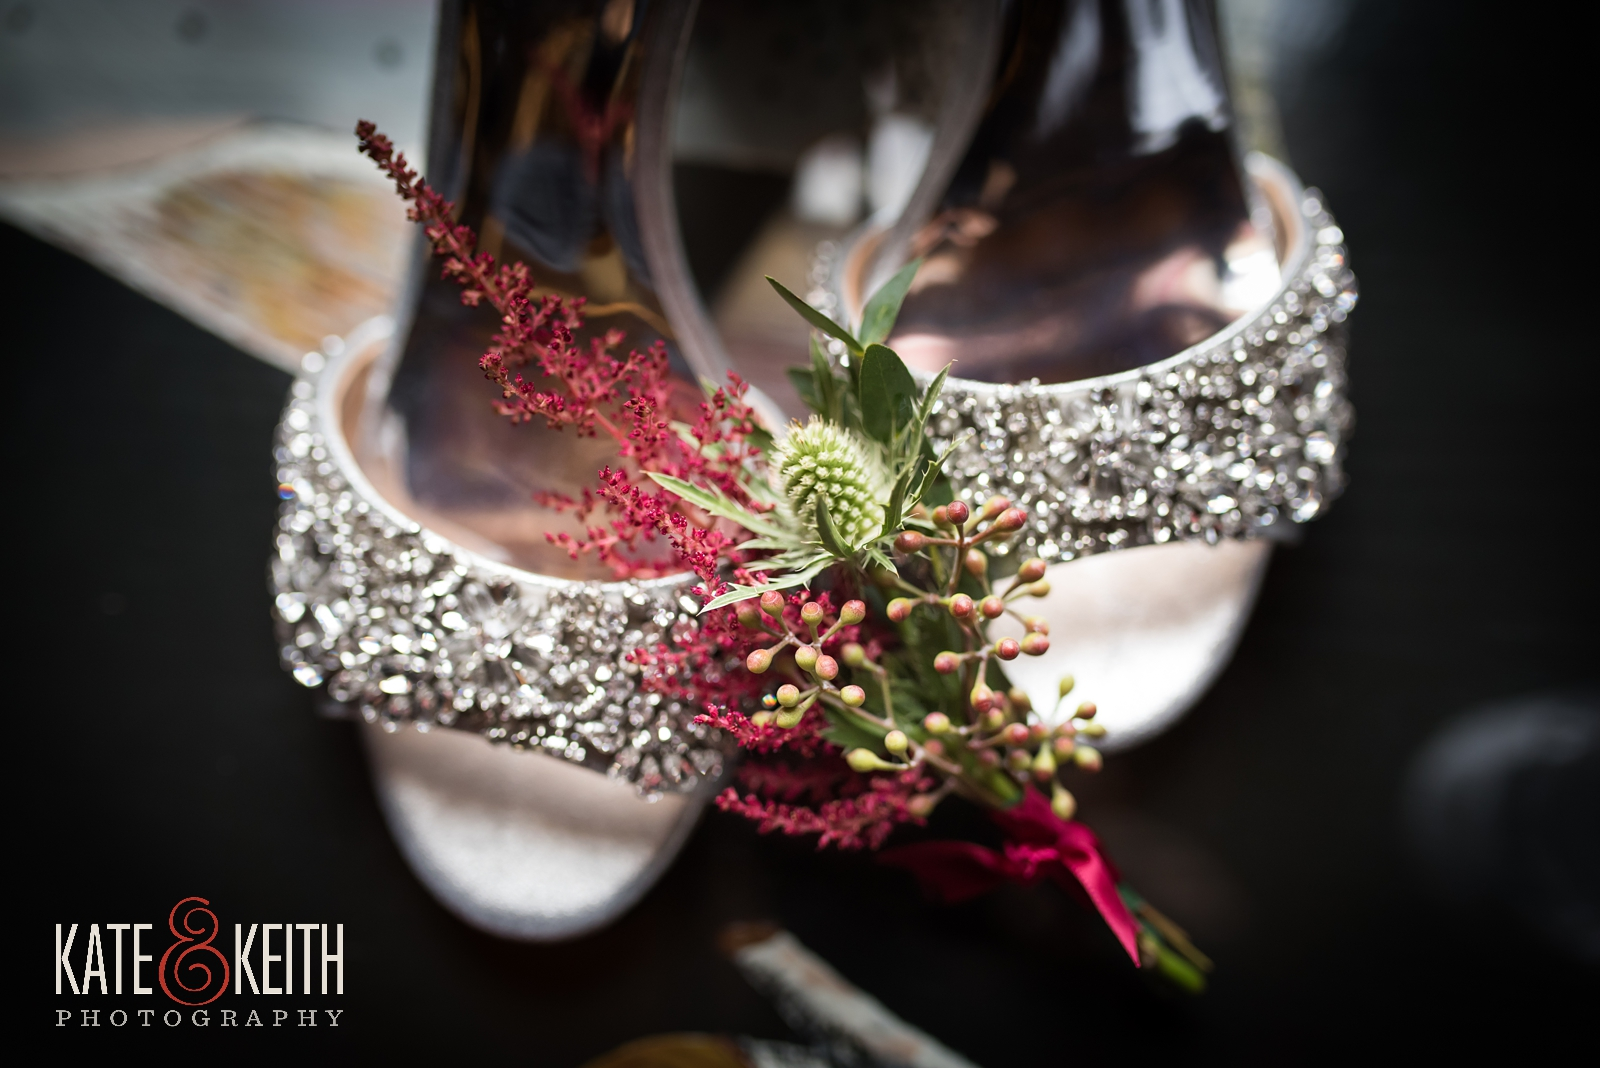 Barn at the Pemi wedding, New Hampshire, Badly Mischka shoes, wedding details, wedding shoes, corsage, thistle corsage, winter wedding, bridal details